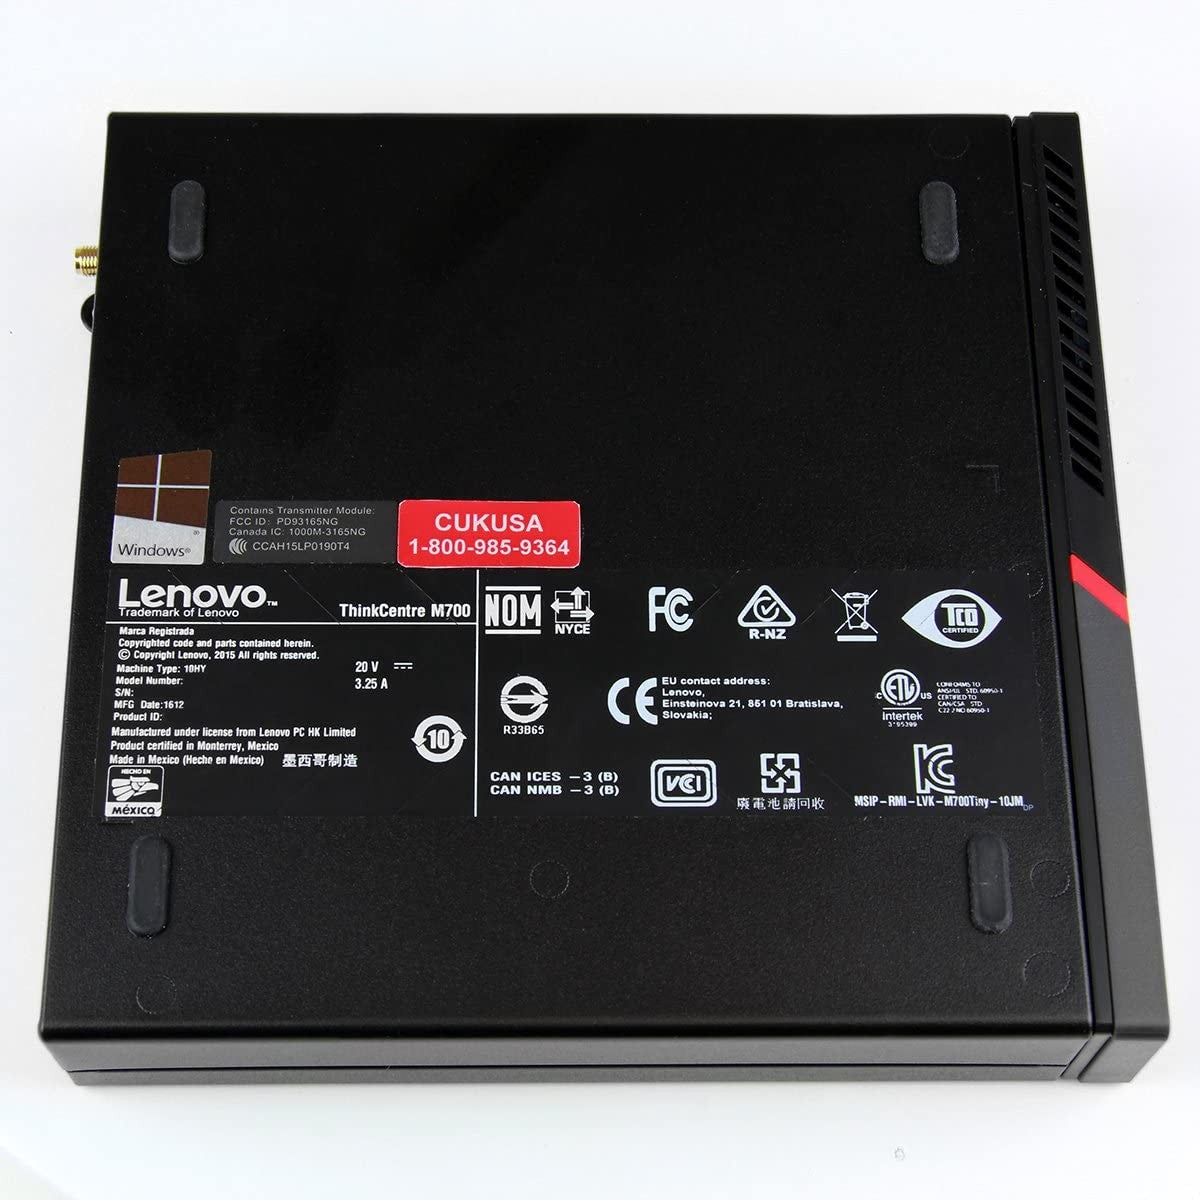 Used Lenovo ThinkCentre M710 Tiny Form Factor Desktop, Intel Core i7 i7-6700, 8GB RAM, 256GB SSD